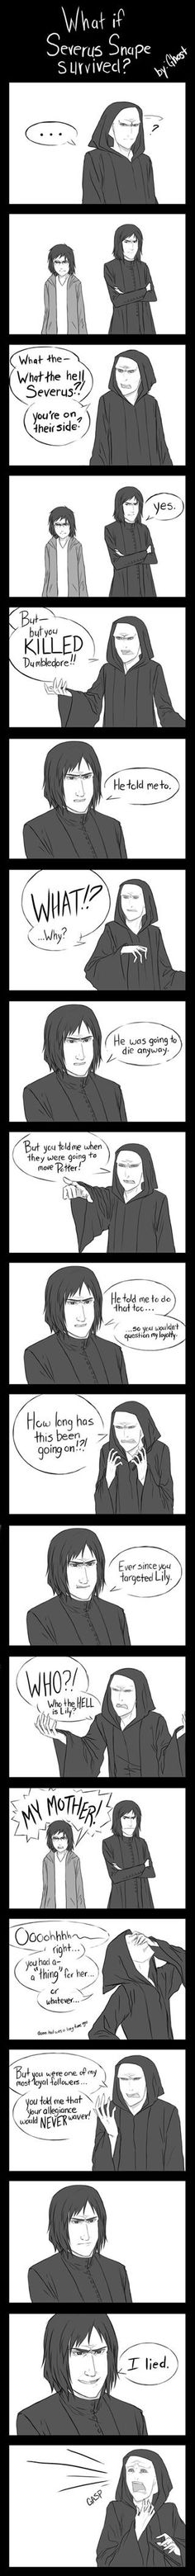 Severus Snape and Voldemort funny Harry potter comic